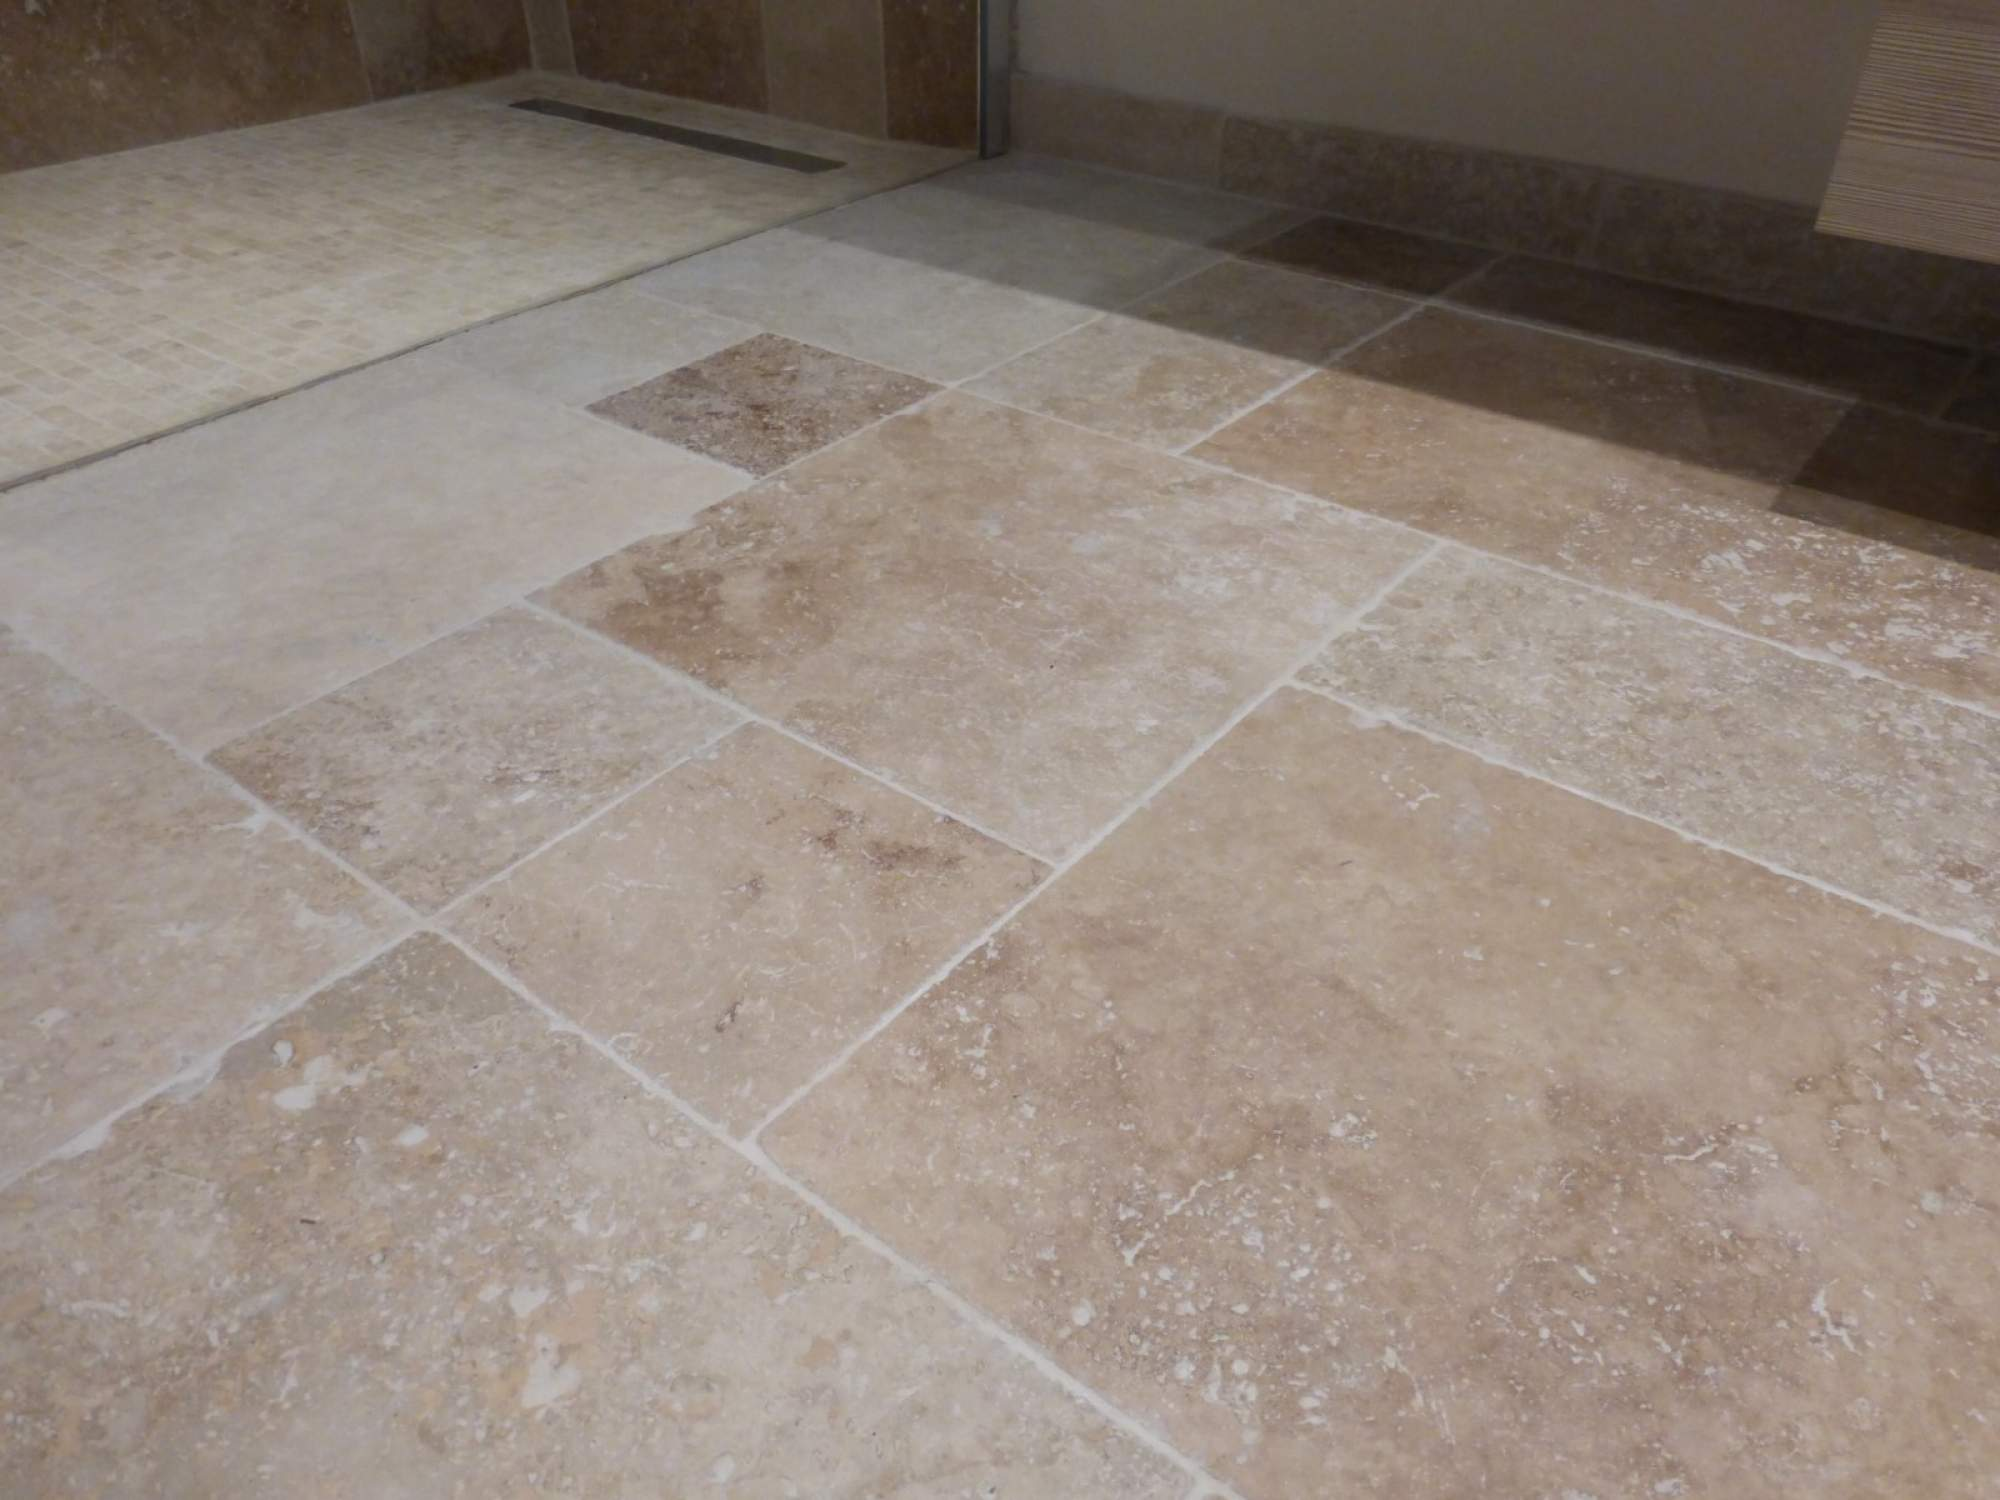 Awesome salle de bain travertin beige ideas awesome for Carrelage blanc 10x10